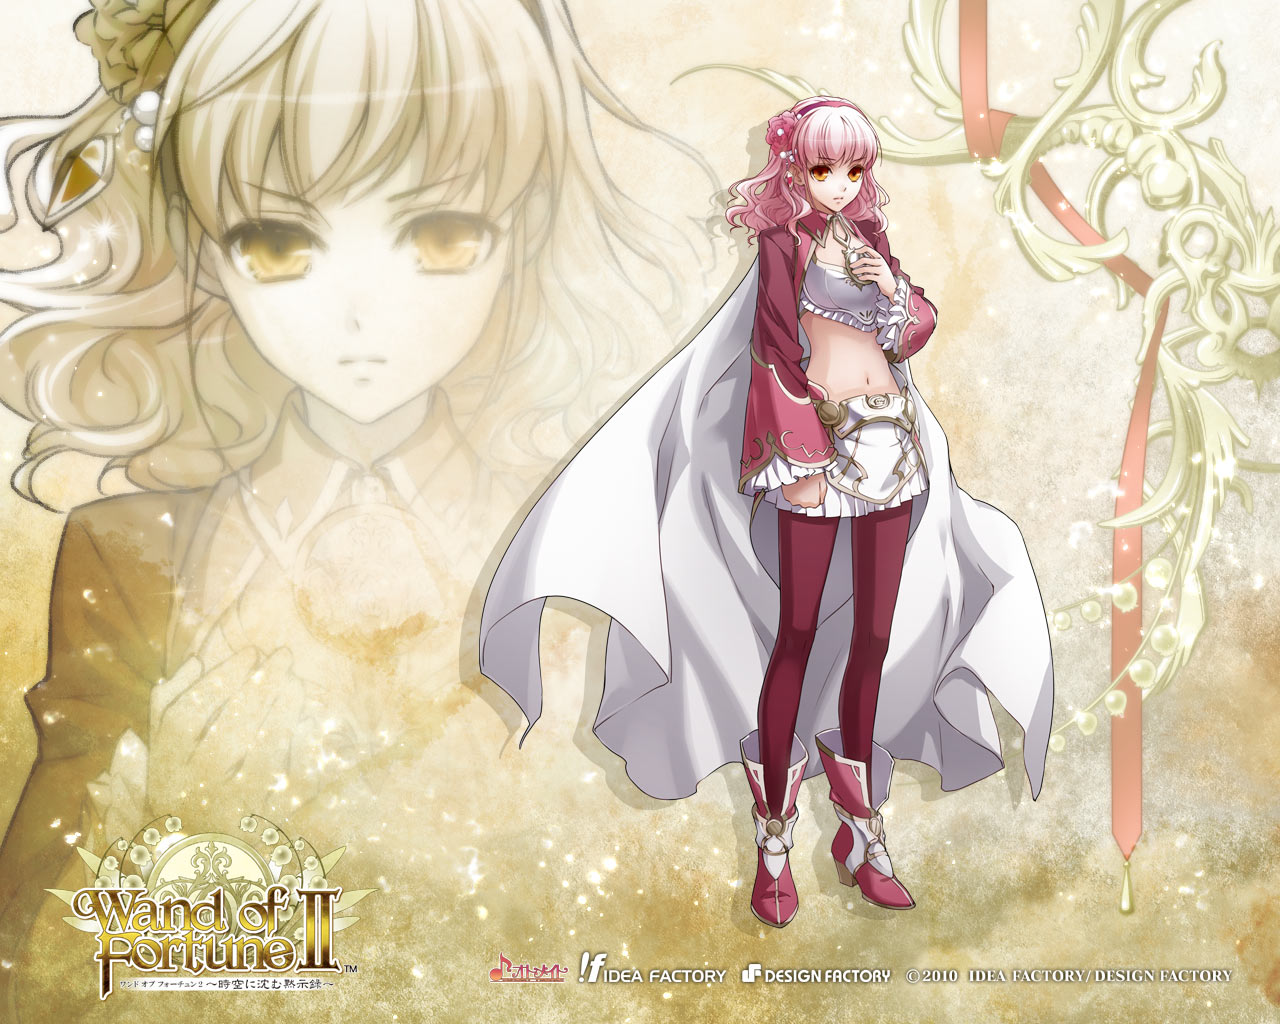 Lulu (Wand of Fortune), Wallpaper - Zerochan Anime Image Board